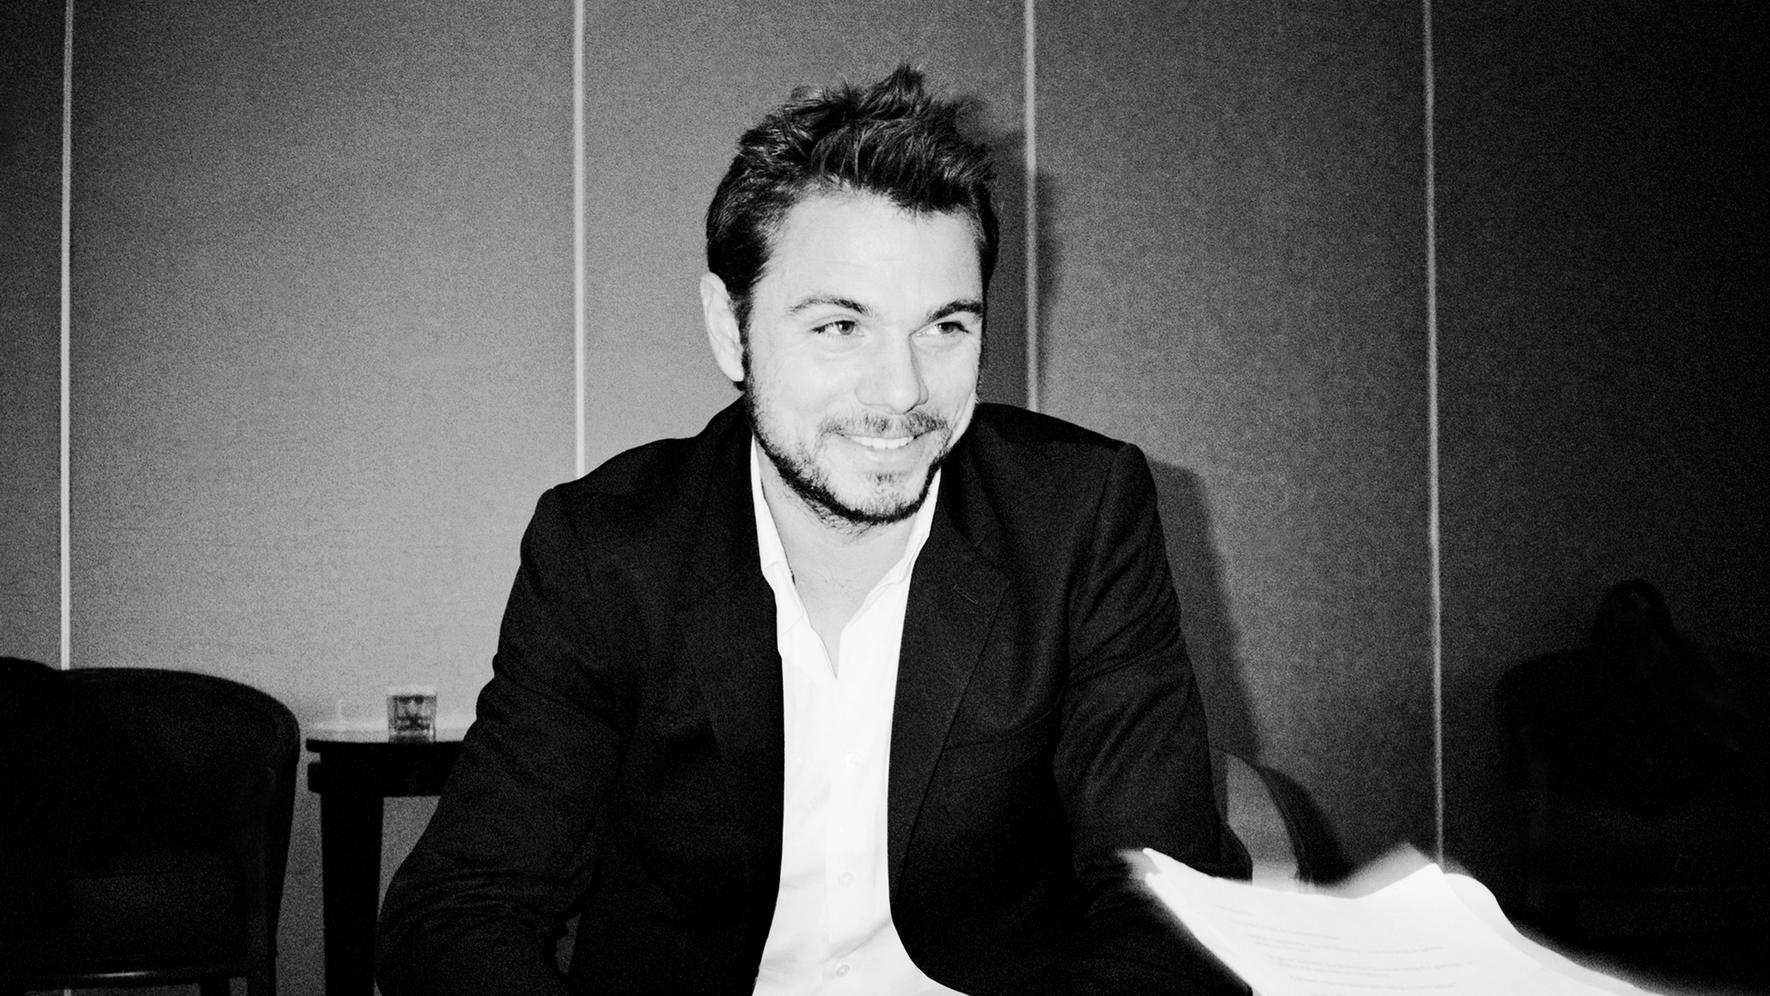 A Personal Note From Stan Wawrinka